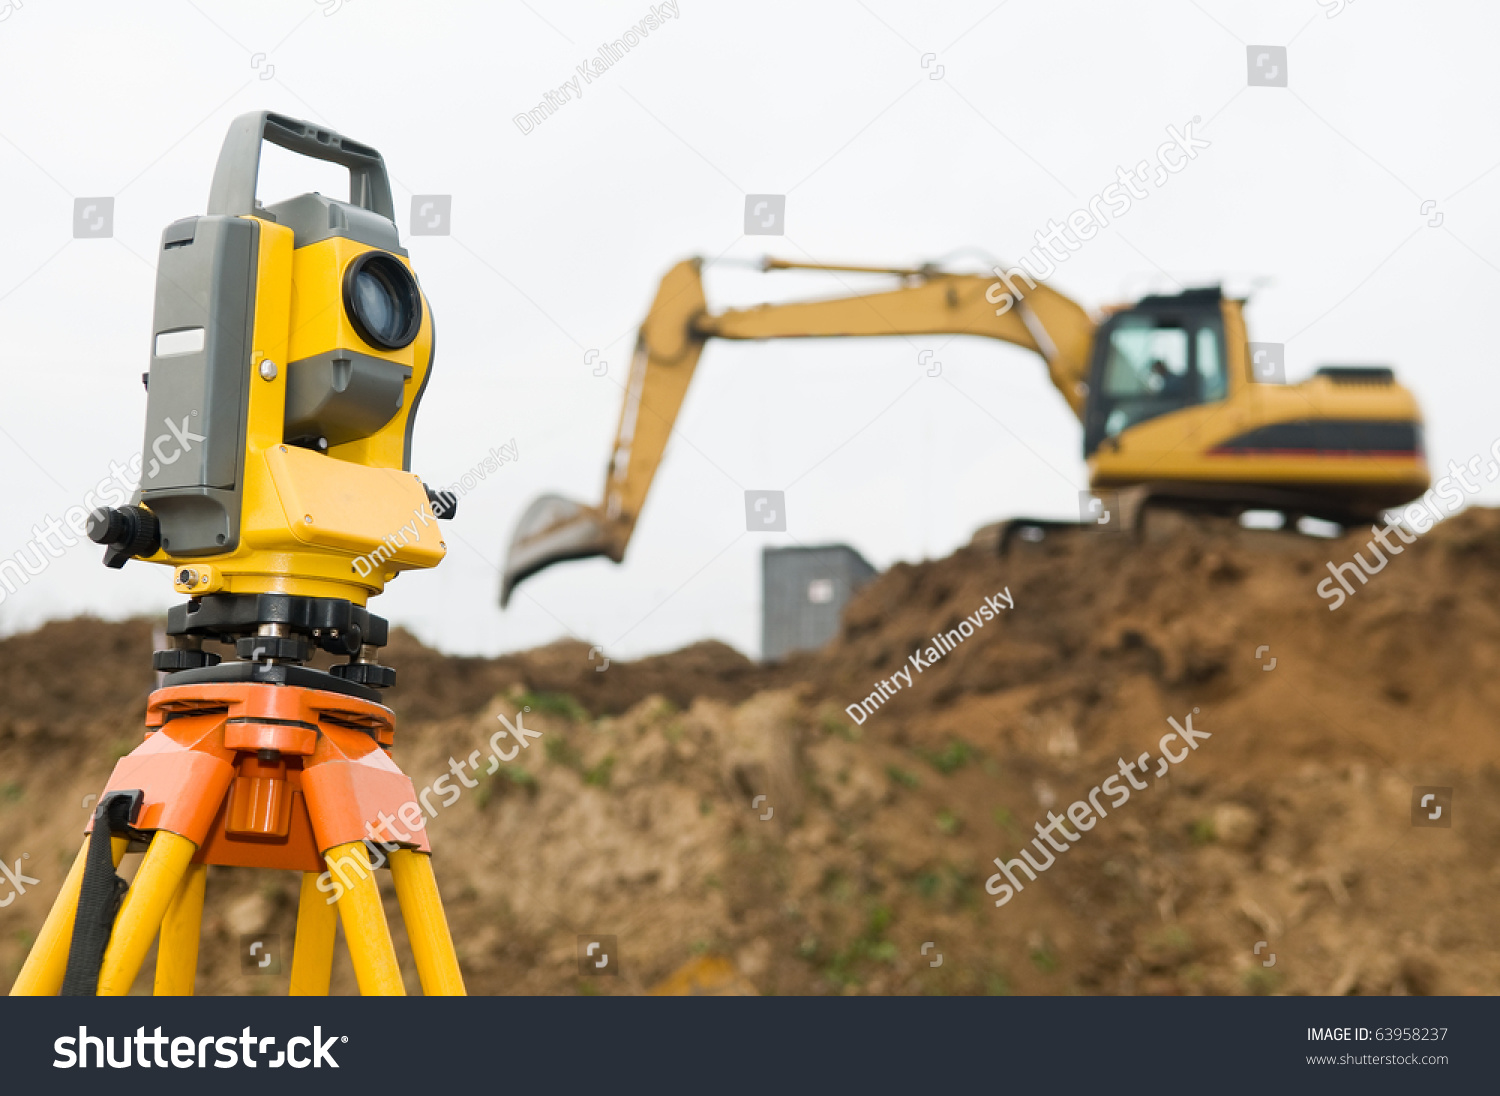 stock-photo-surveyor-equipment-theodolite-on-tripod-at-building-area-in-front-of-working-construction-machinery-63958237